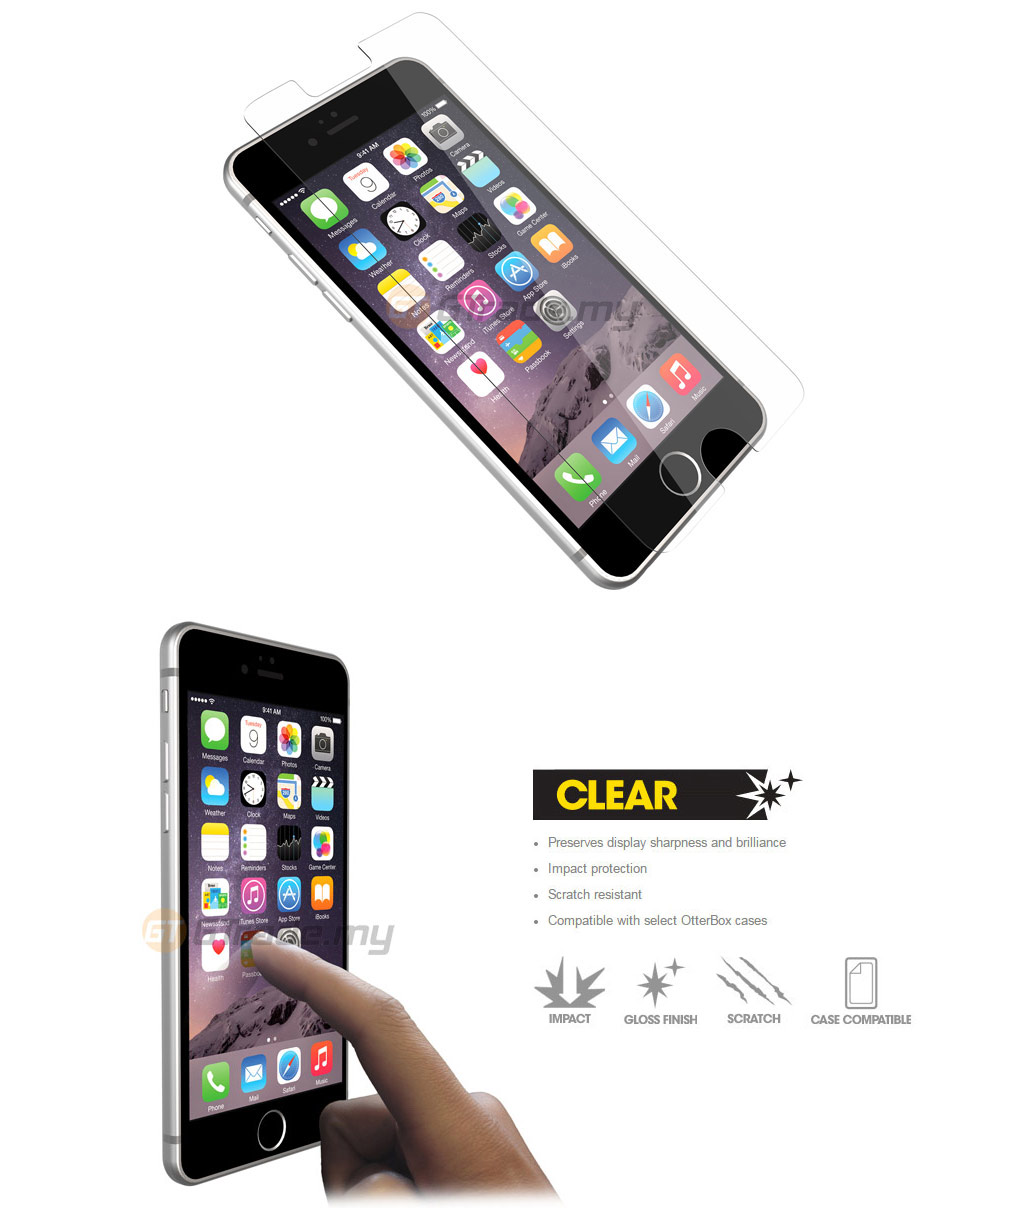 otterbox-clearly-protected-alpha-glass-clear-apple-iphone-6-4.7-p